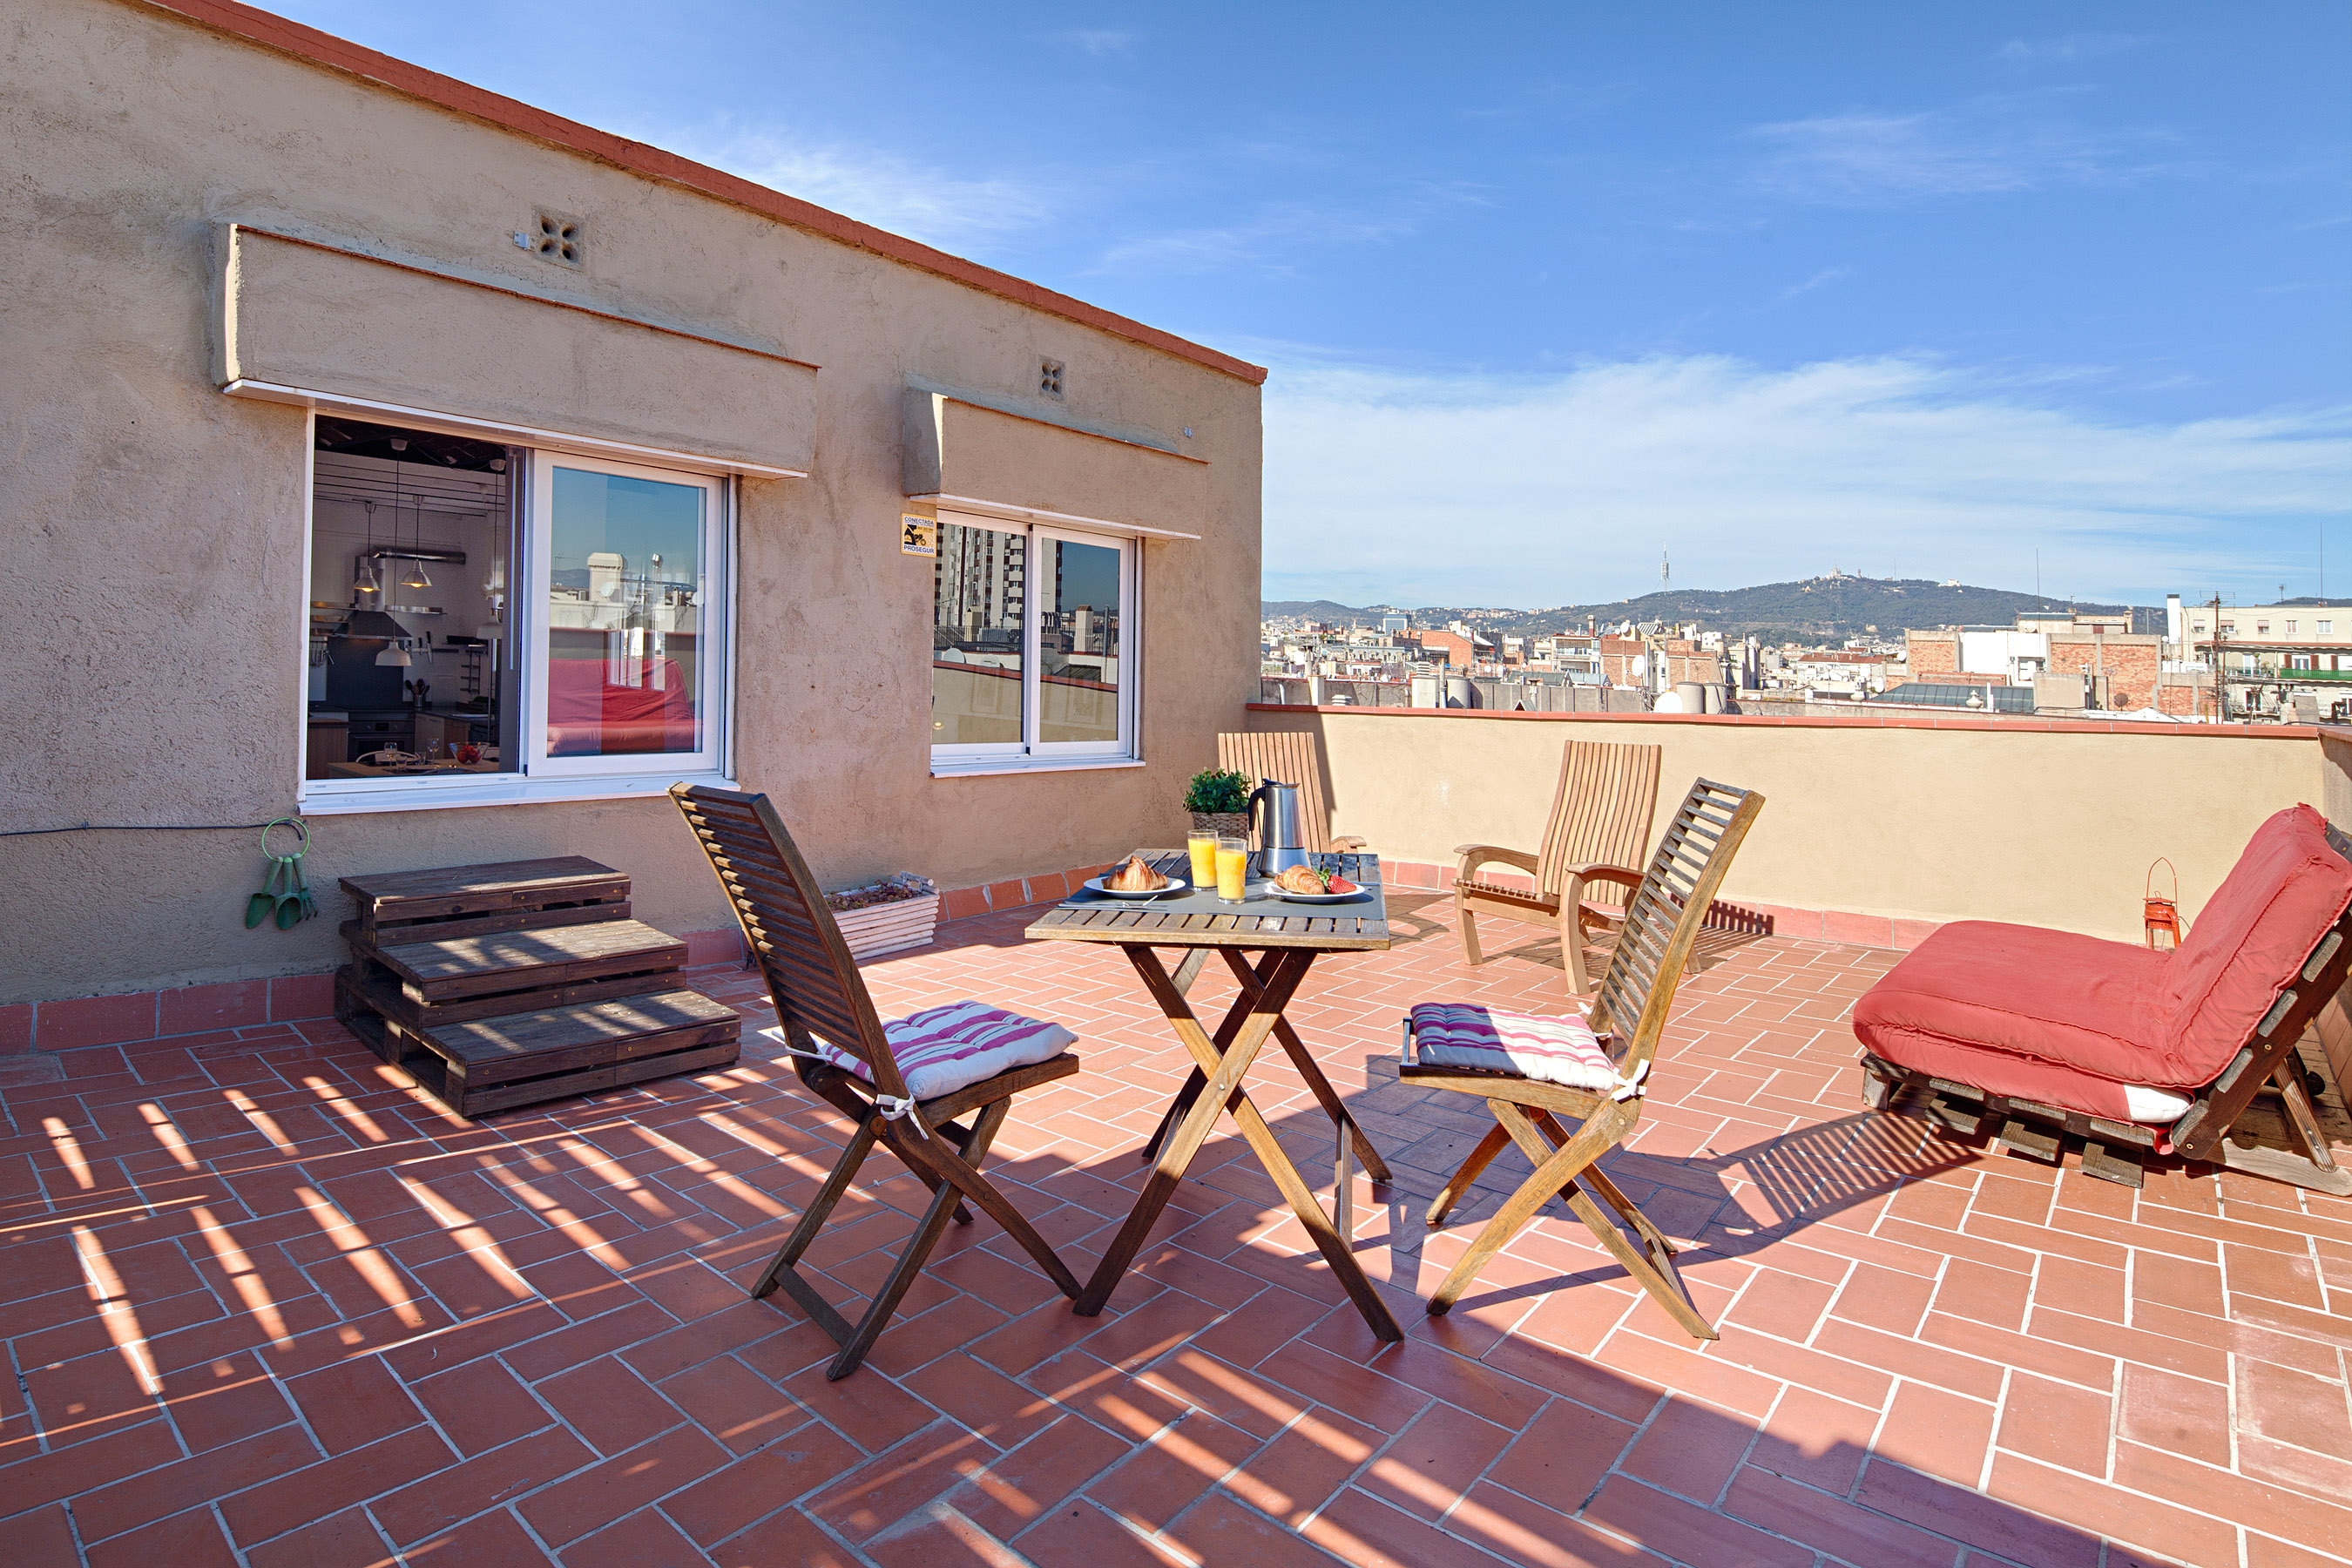 bailen attic apartment barcelona terrace Apartments with beautiful views over Barcelona